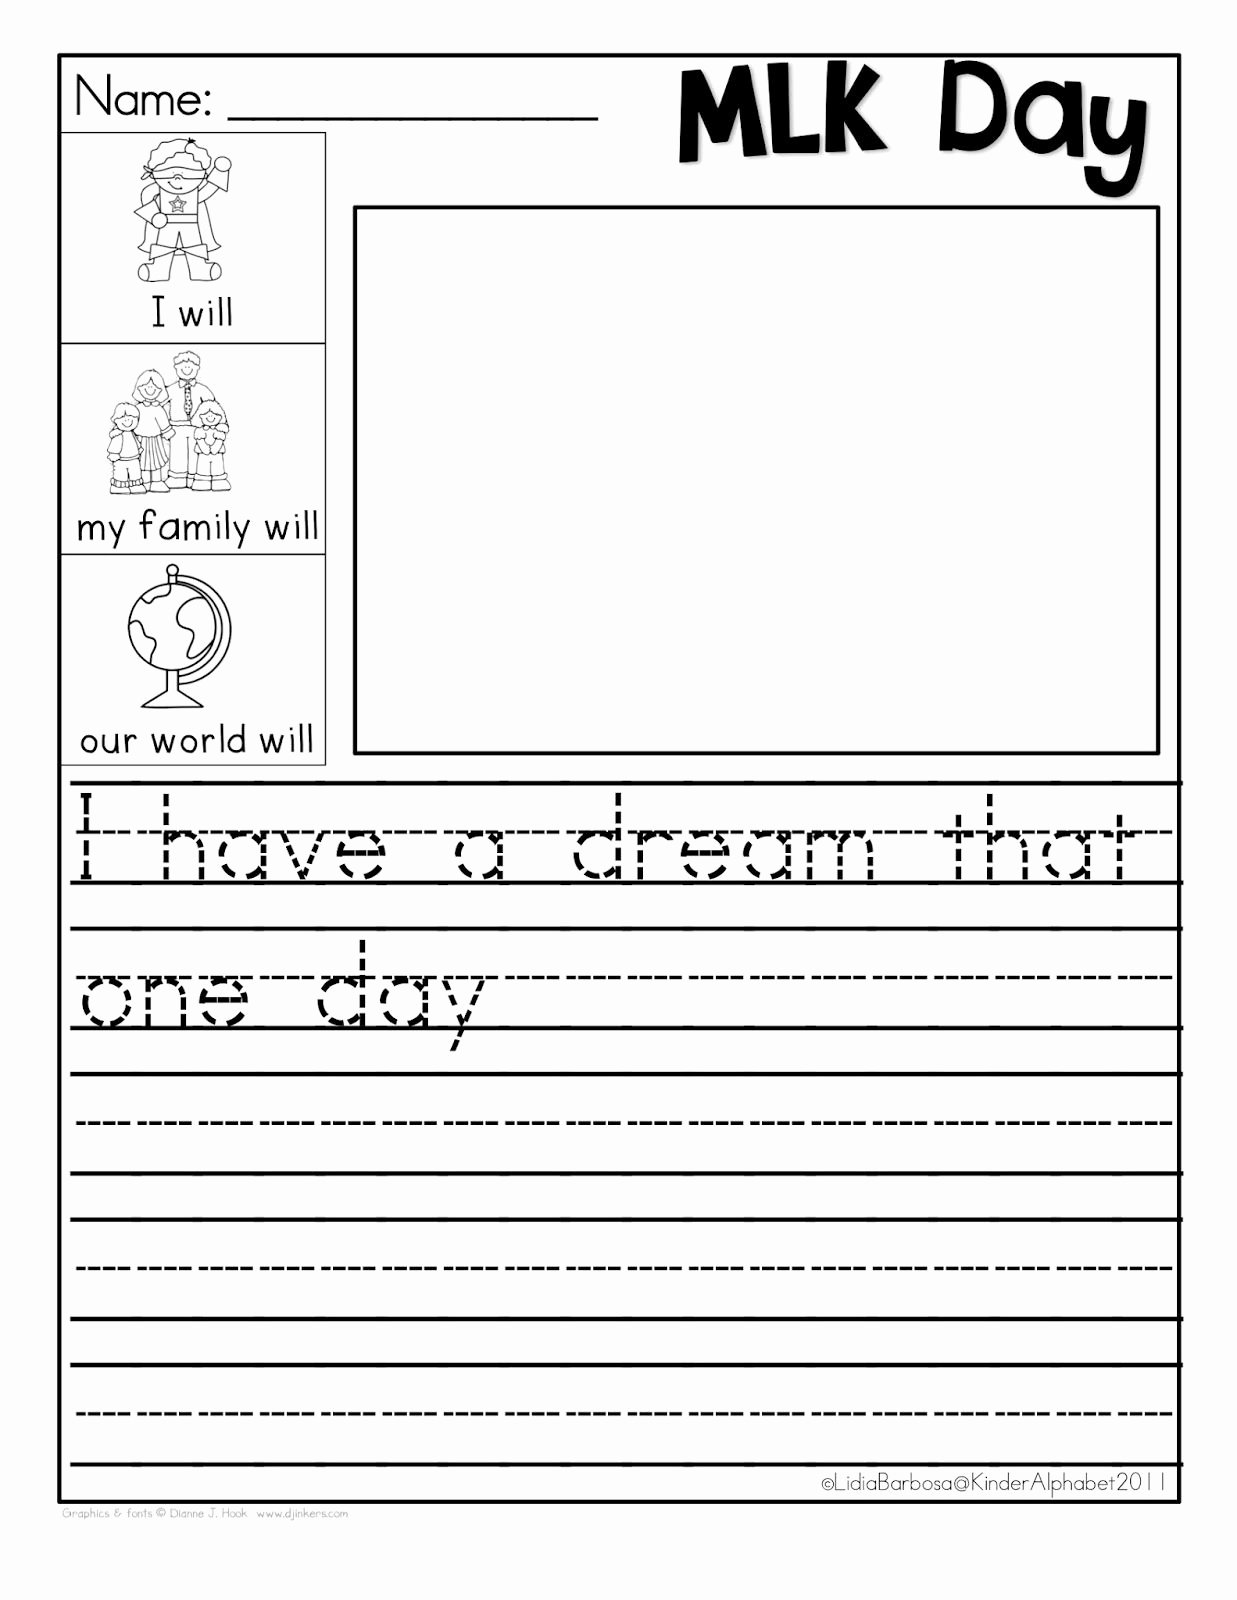 Martin Luther King Worksheets for Preschoolers Awesome Martin Luther King Jr Freebie I Have Dream Free Worksheets